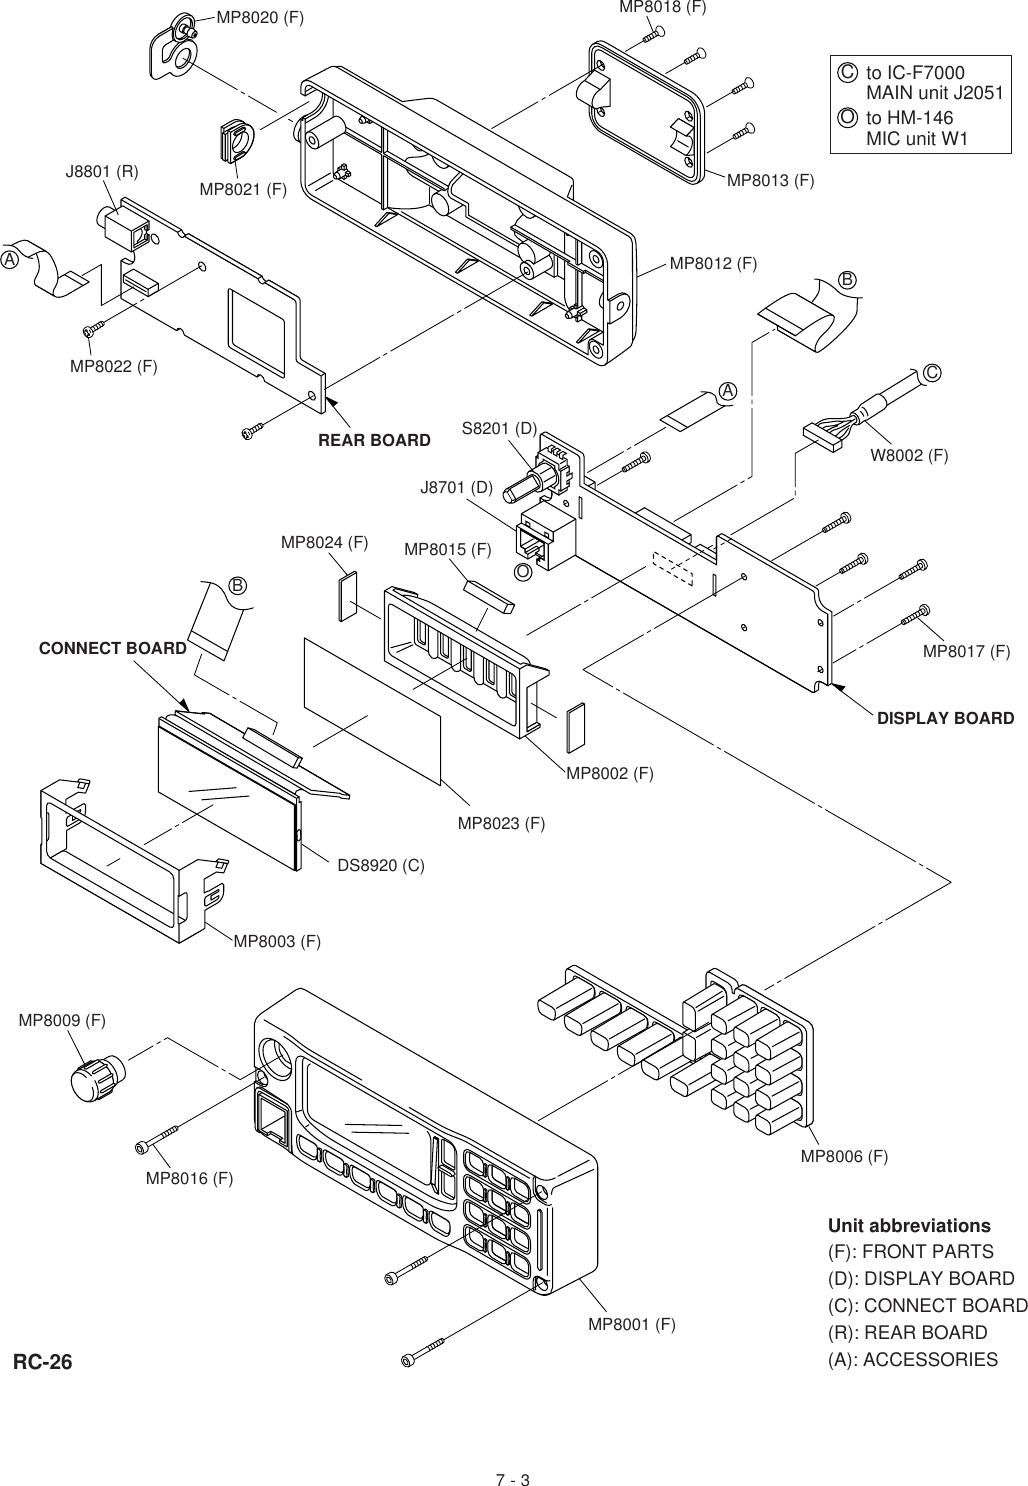 Icom Hm 46 Wiring Diagram Page 6 And Schematics Circuit Abbreviations Diagrams Source Unit F Front Parts D Display Board C